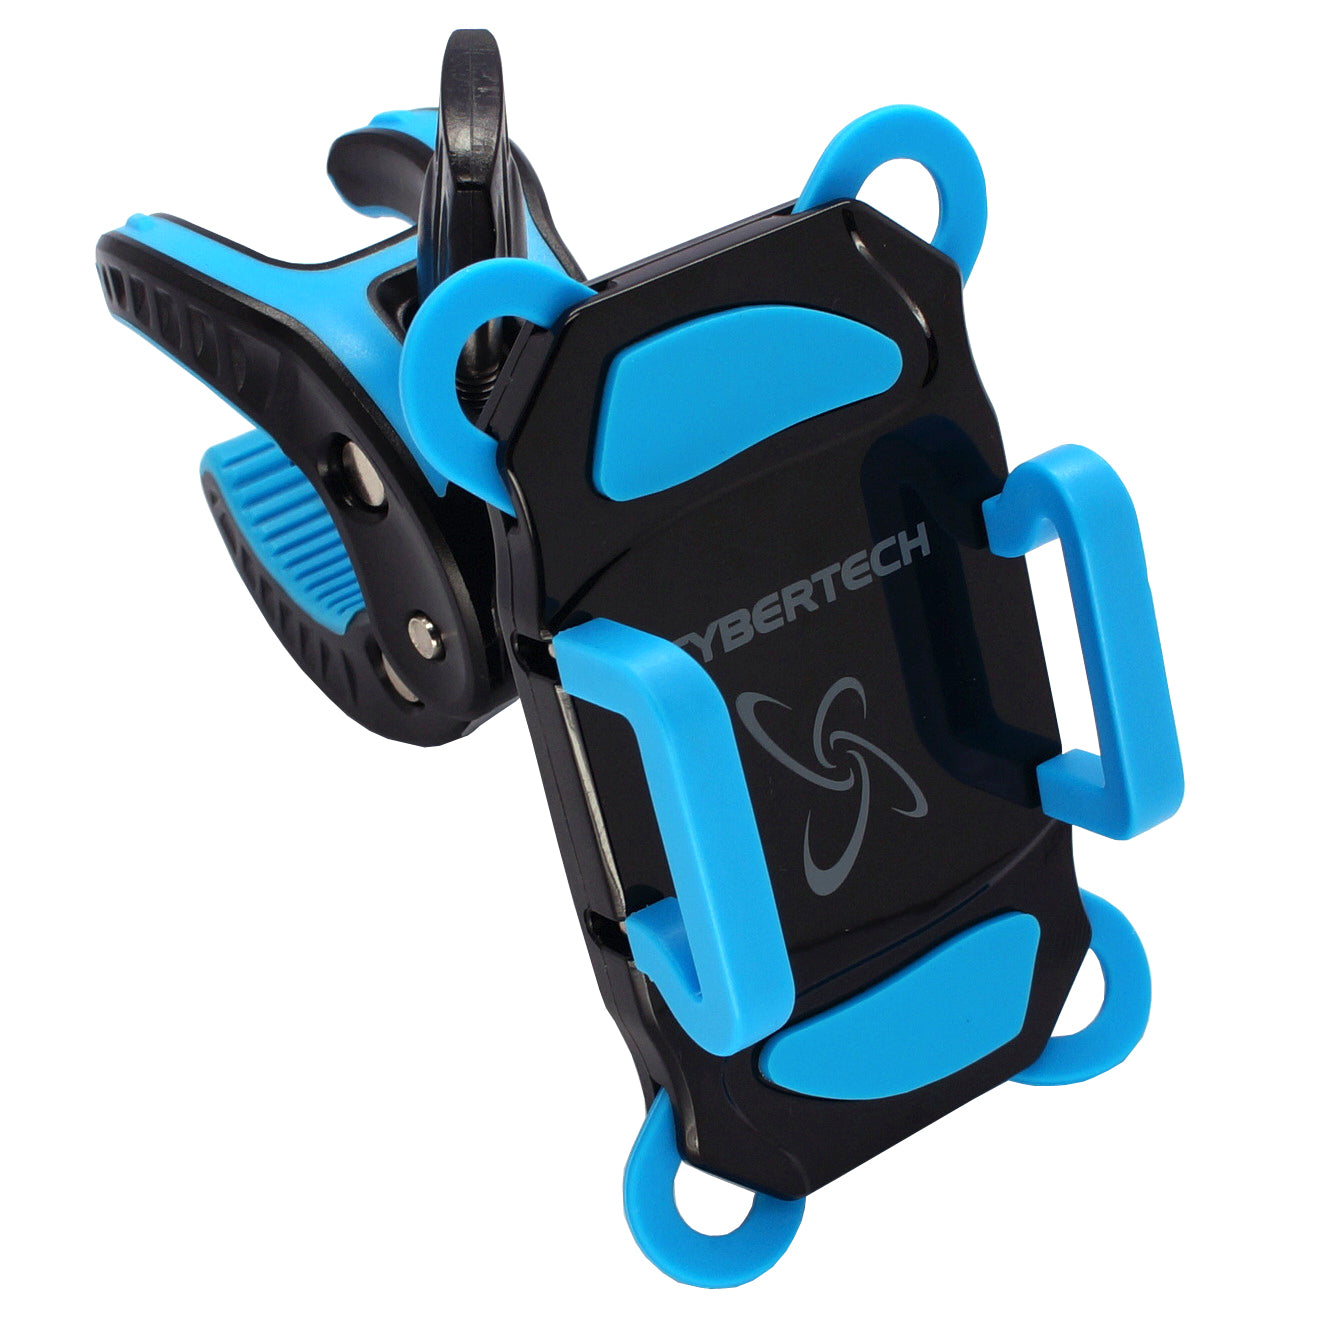 Patent Designed Mobile Catch Grab Everywhere Universal Cell Phone Bicycle Rack Handlebar & Motorcycle Holder Cradle for iPhone 7/6/6S/6S plus/5S/5C,Samsung Galaxy S3/S4/S5/S6/S7 Note 3/4/5,Nexus,HTC